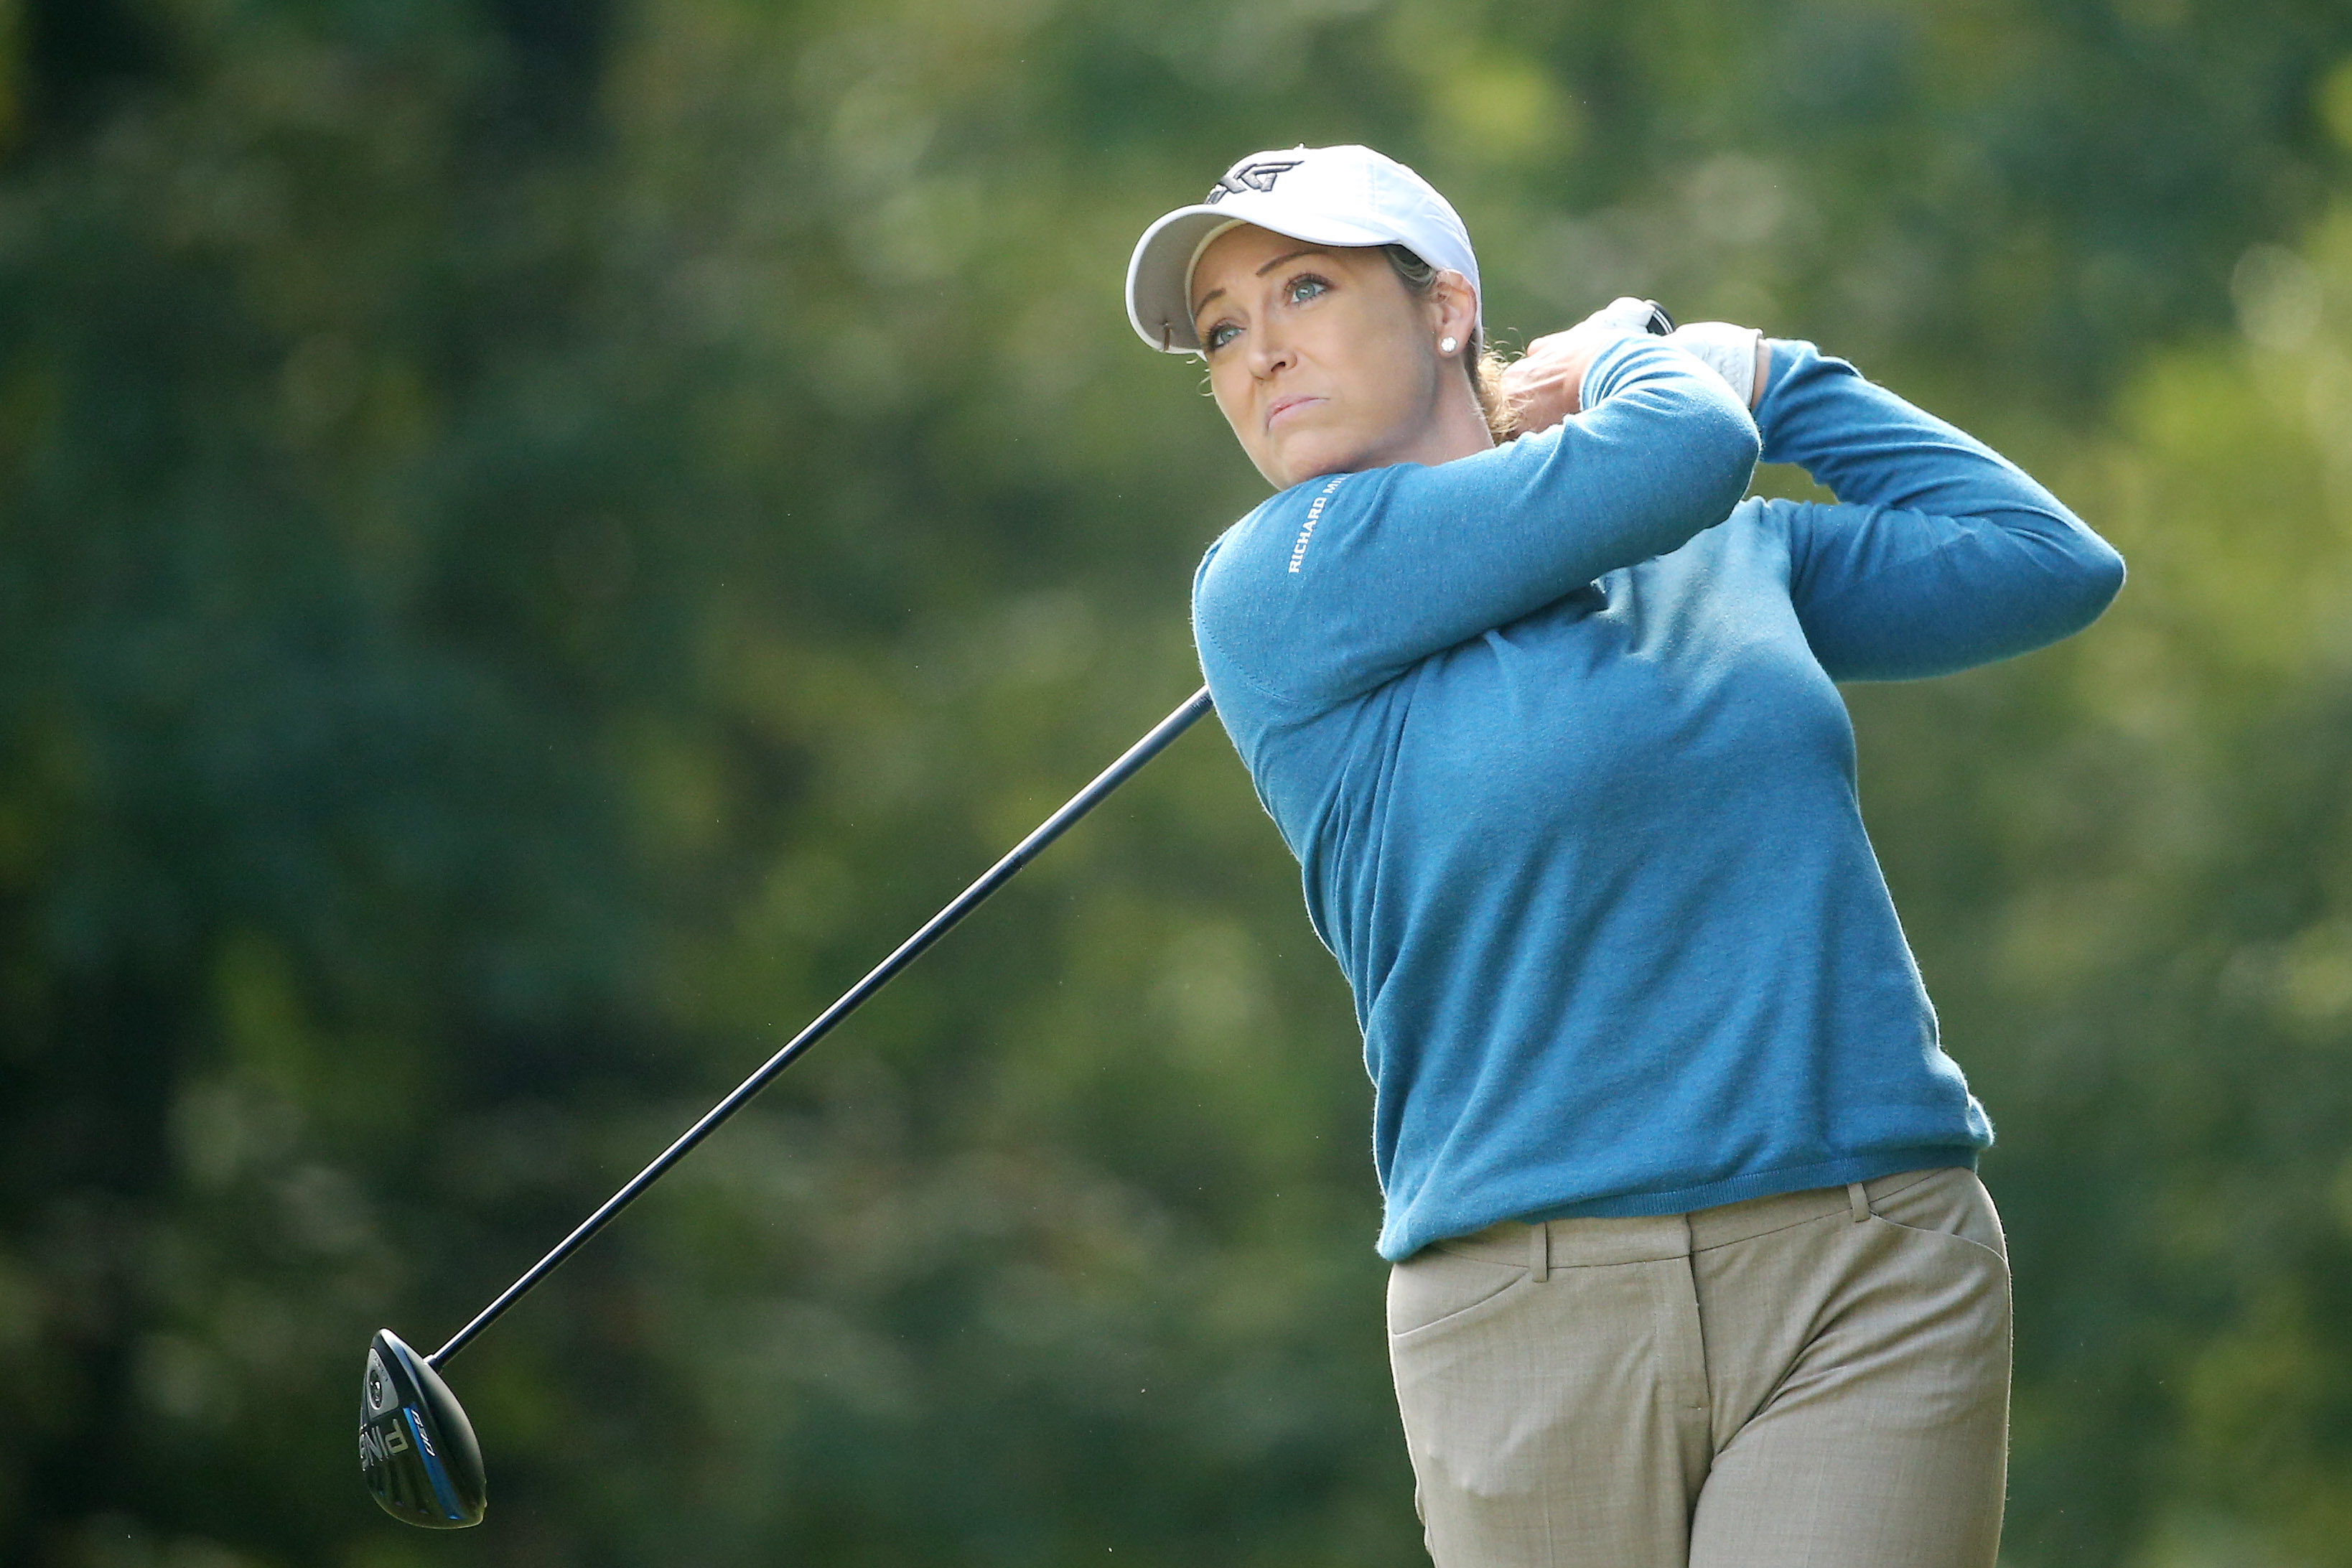 Cristie Kerr is an 18-time winner on the LPGA tour.